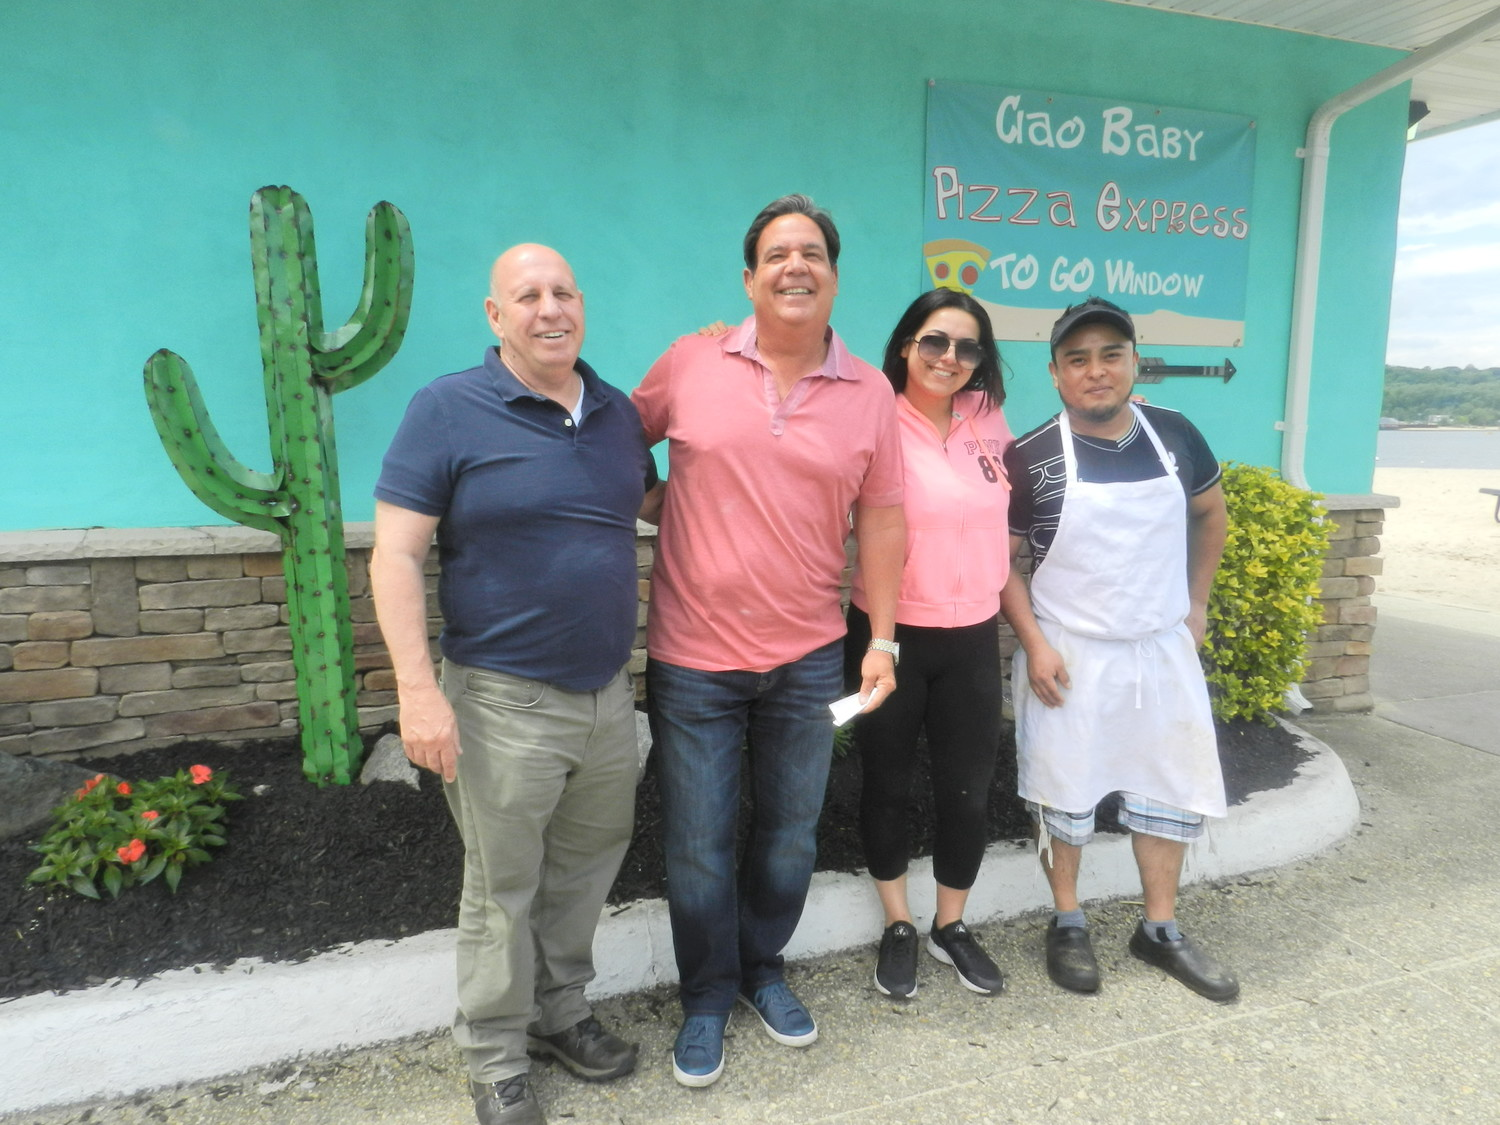 Roy Monaco, the owner, far left, Joe DiGirolomo, the general manager; Danielle DiGirolomo, the manager; and Ricardo Ramirez the head chef, make up Blu Iguana's staff.